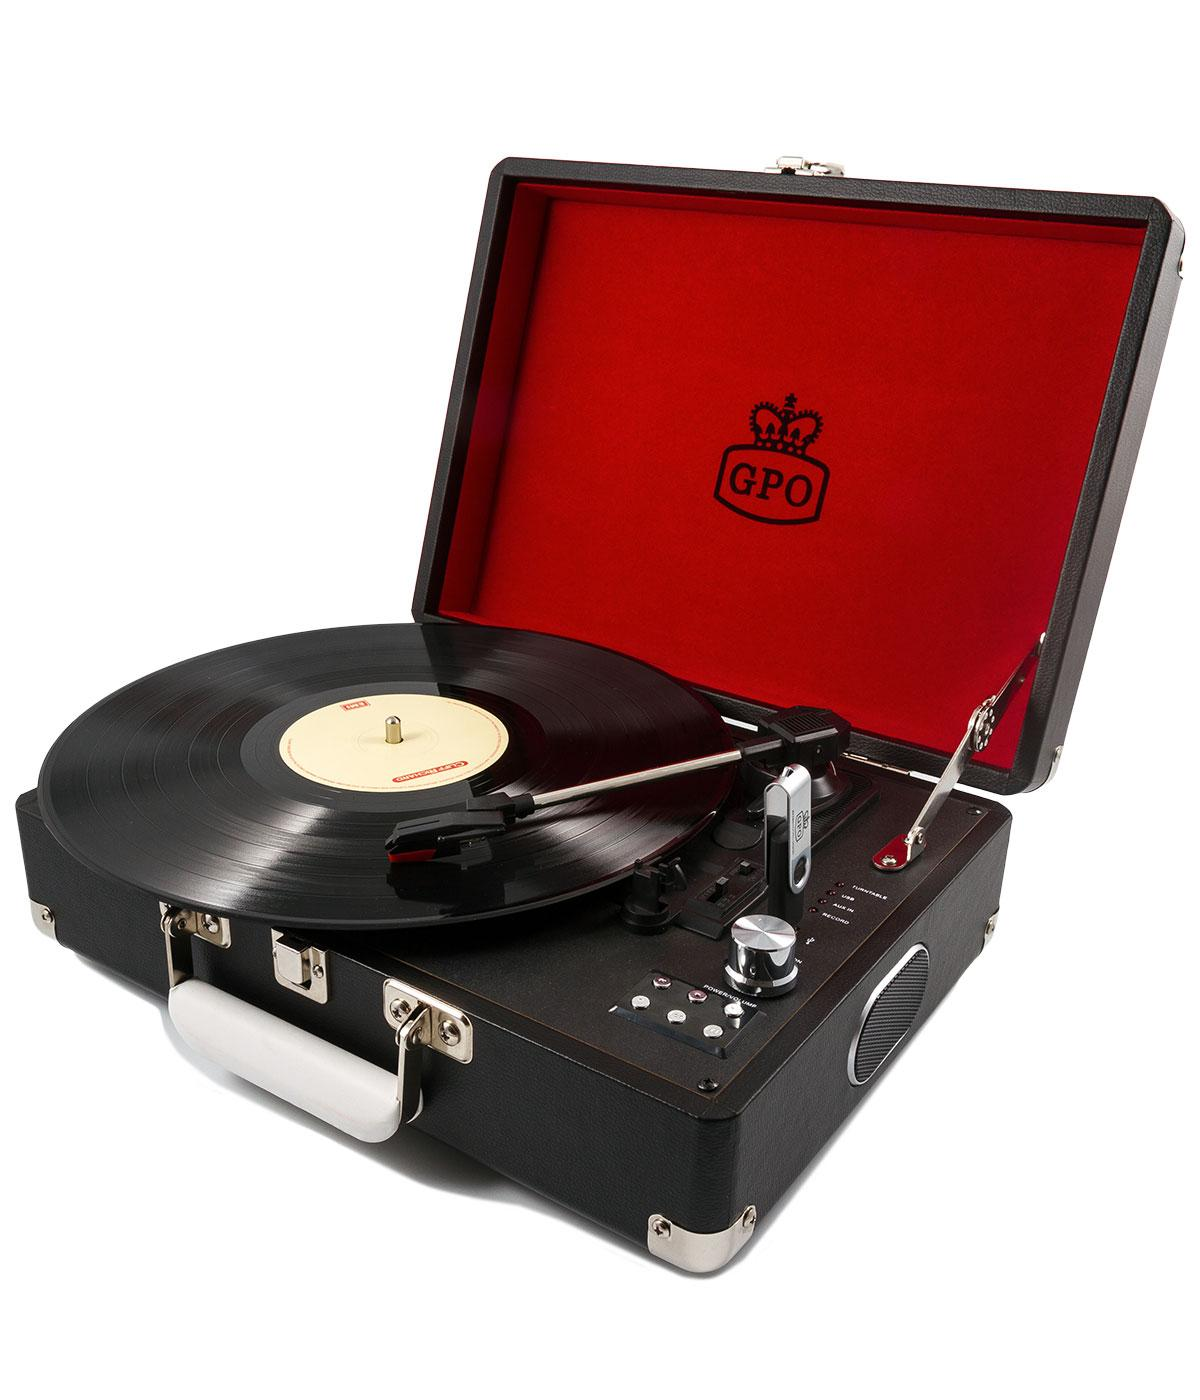 GPO RETRO 1960s Attache Case Vinyl Record Player